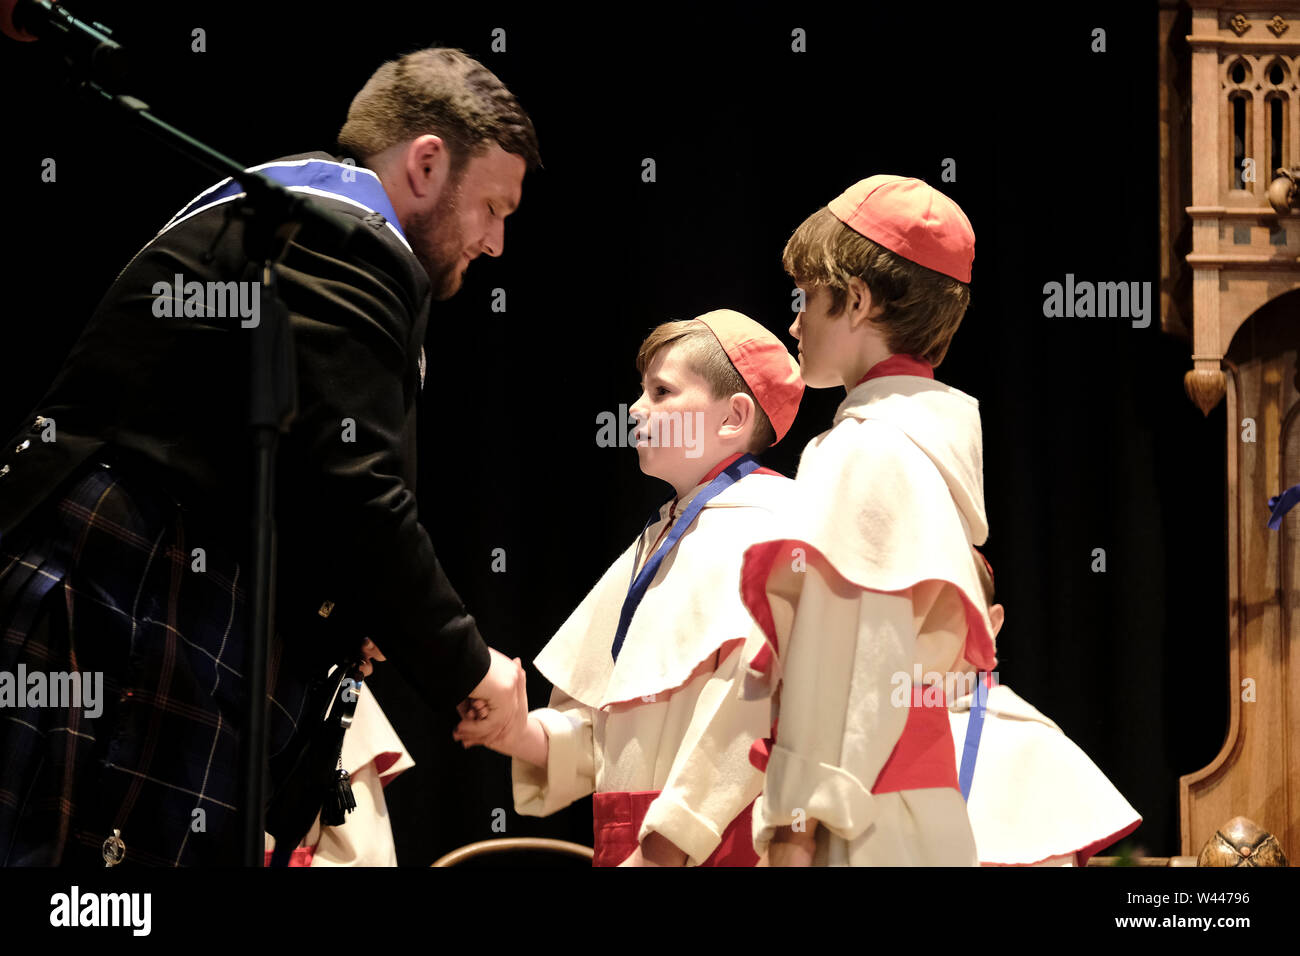 Innerleithen, UK. 19 July 2019. St Ronans Cleikum Innerleithen Standard Bearer 2019, Ronan D Caine during his installation presents Medals to the Monks at the Cleikum Ceremonies in Memorial Hall, Innerleithen. as part of St RonanÕs Games Week, Friday 19 July 2019 . Instituted in 1827, The Games are the oldest organised sports meeting in Scotland and are now part of a week long festival that incorporates many events for every age group. Central to the festivities are the Cleikum Ceremonies when the town's association with its Patron Saint, St. Ronan, is celebrated (Credit: Rob Gray ) - Stock Image